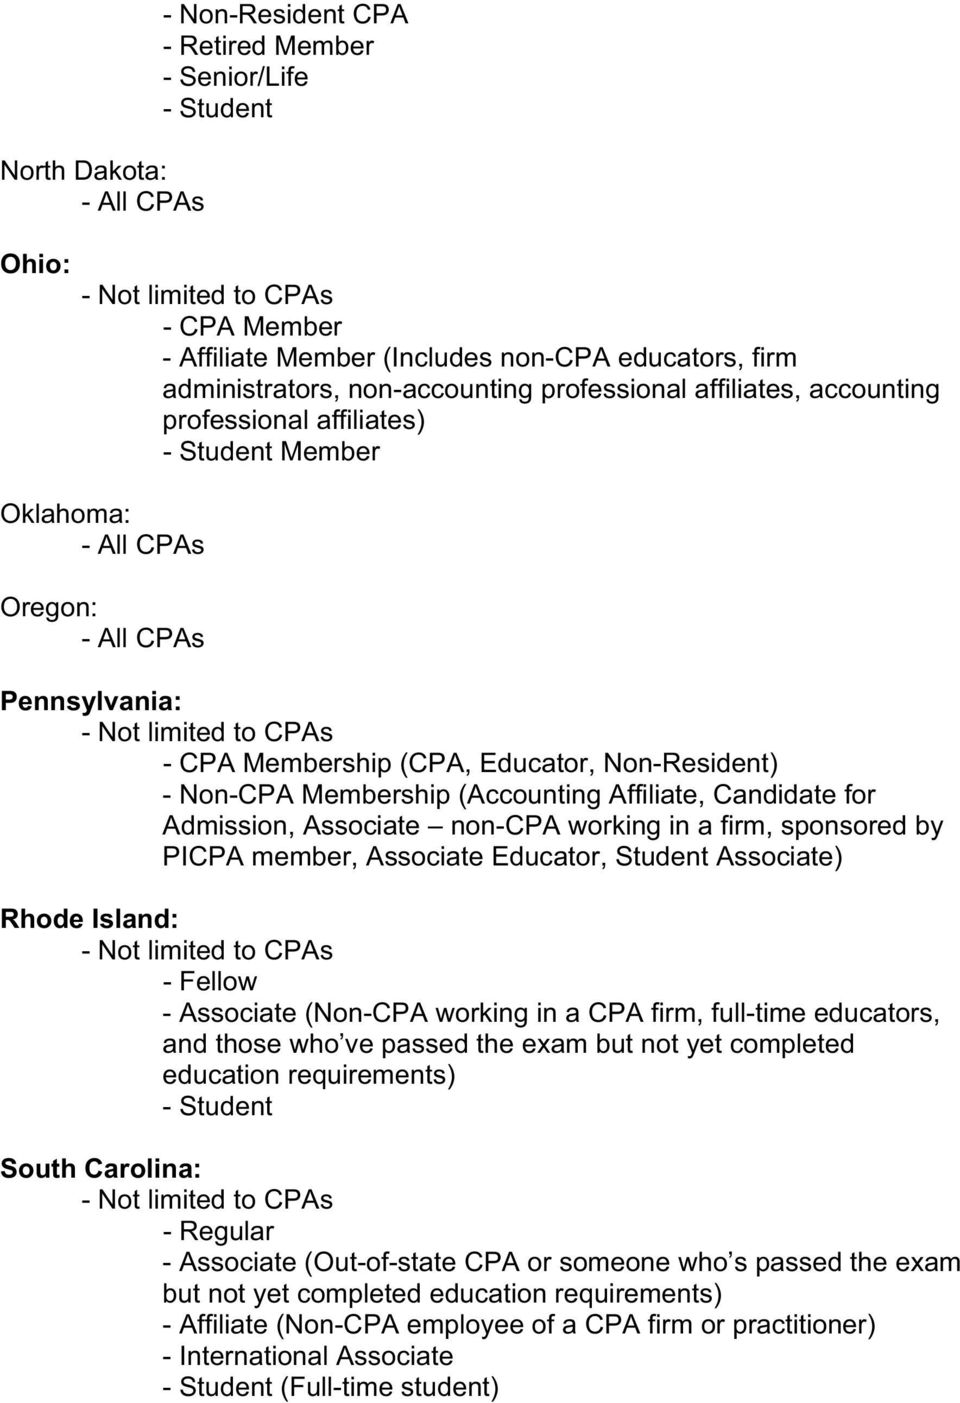 Associate non-cpa working in a firm, sponsored by PICPA member, Associate Educator, Student Associate) Rhode Island: - Associate (Non-CPA working in a CPA firm, full-time educators, and those who ve